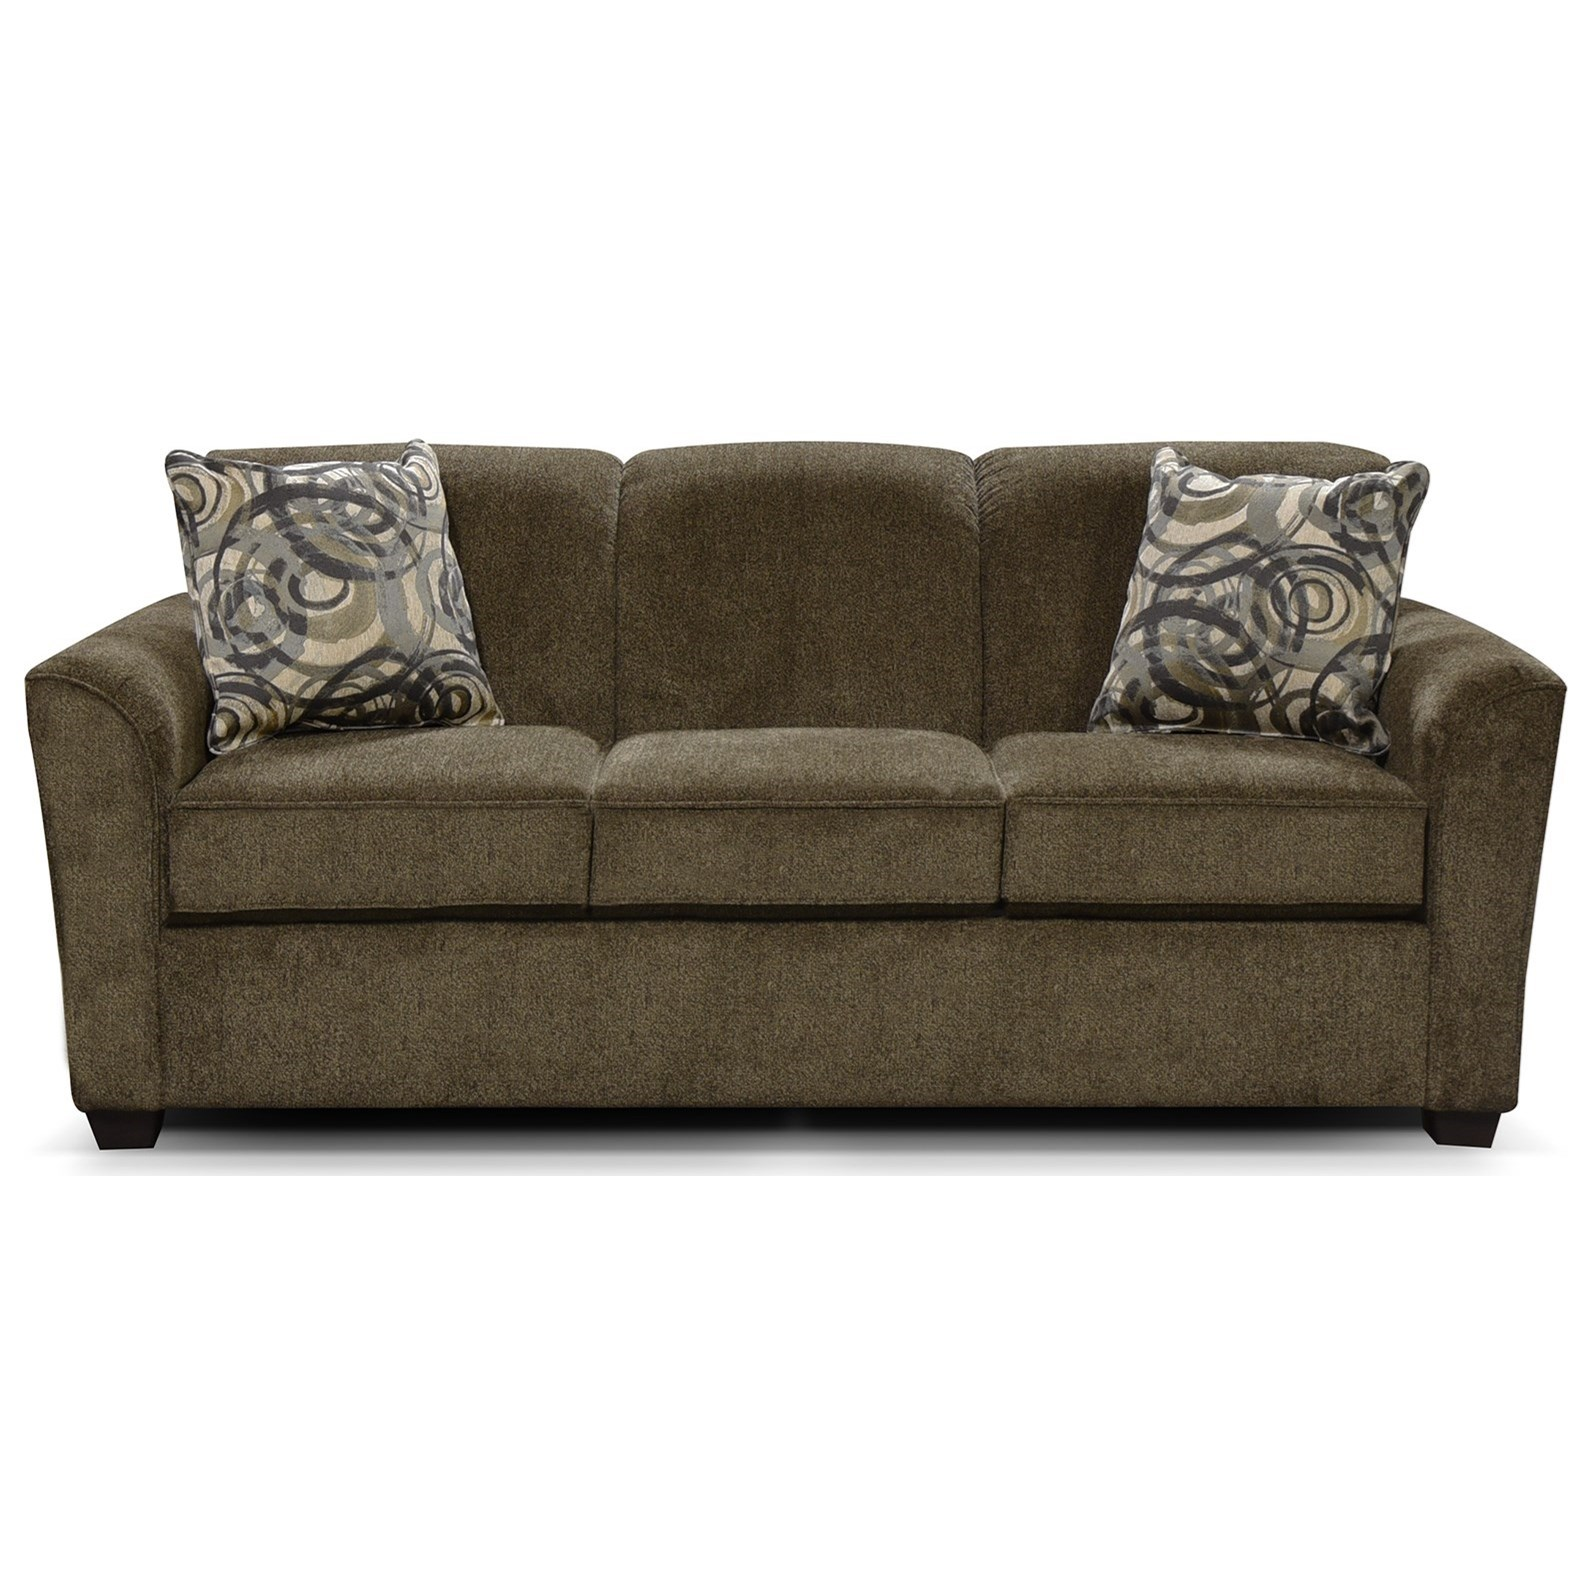 England Smyrna 305 Sofa With Casual Contemporary Style